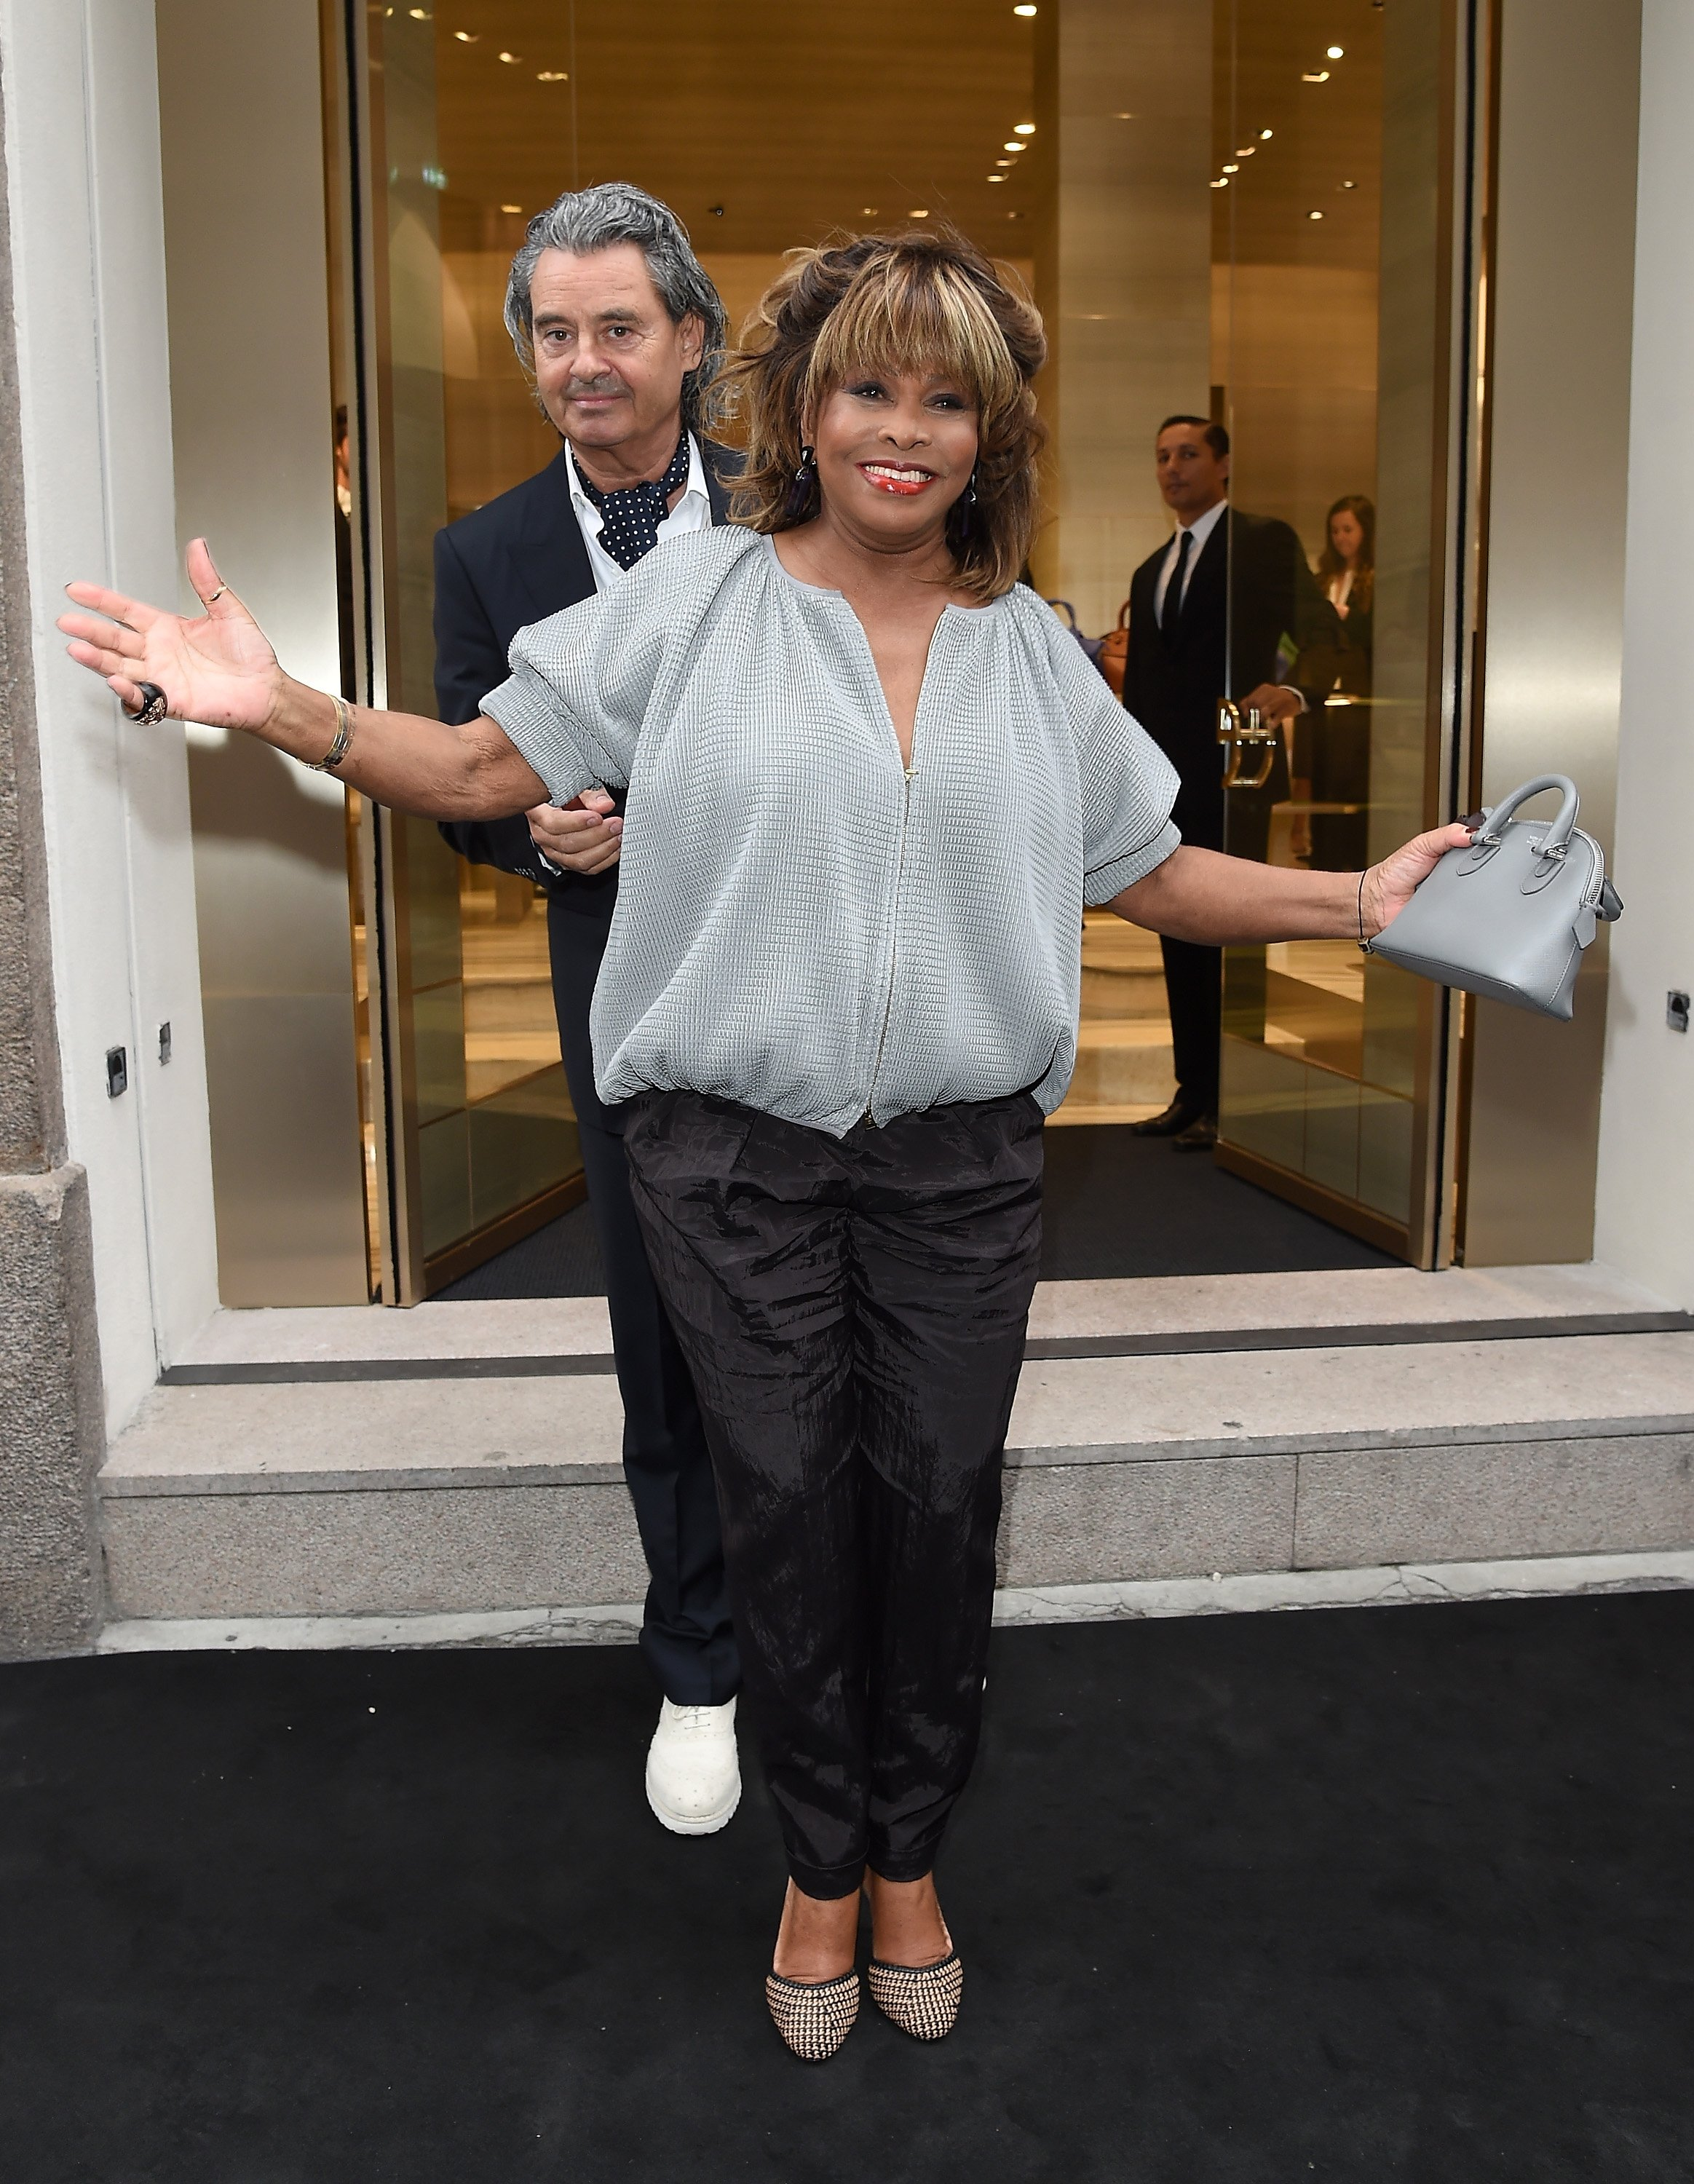 Tina Turner and Erwin Bach attend the Giorgio Armani 40th Anniversary Boutique Cocktail Reception on April 29, 2015 in Milan, Italy. | Source: Getty Images